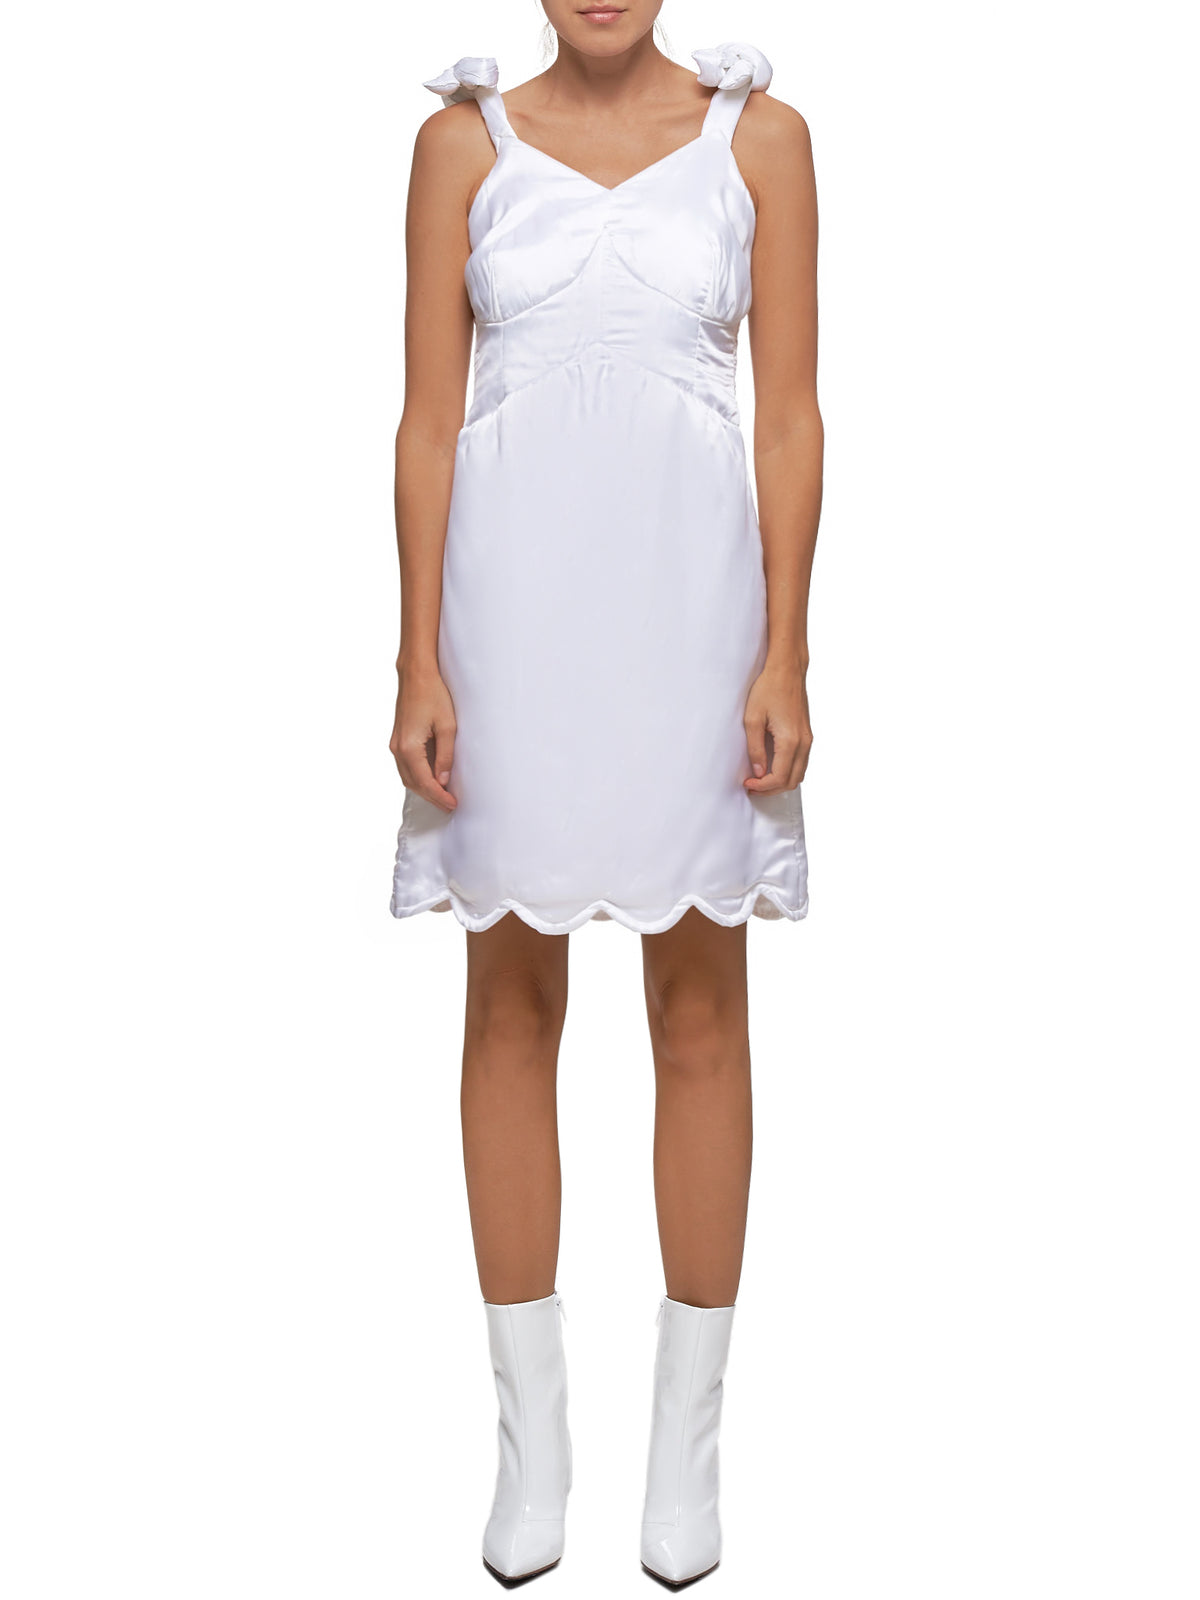 MM6 Maison Margiela Dress - Hlorenzo Front